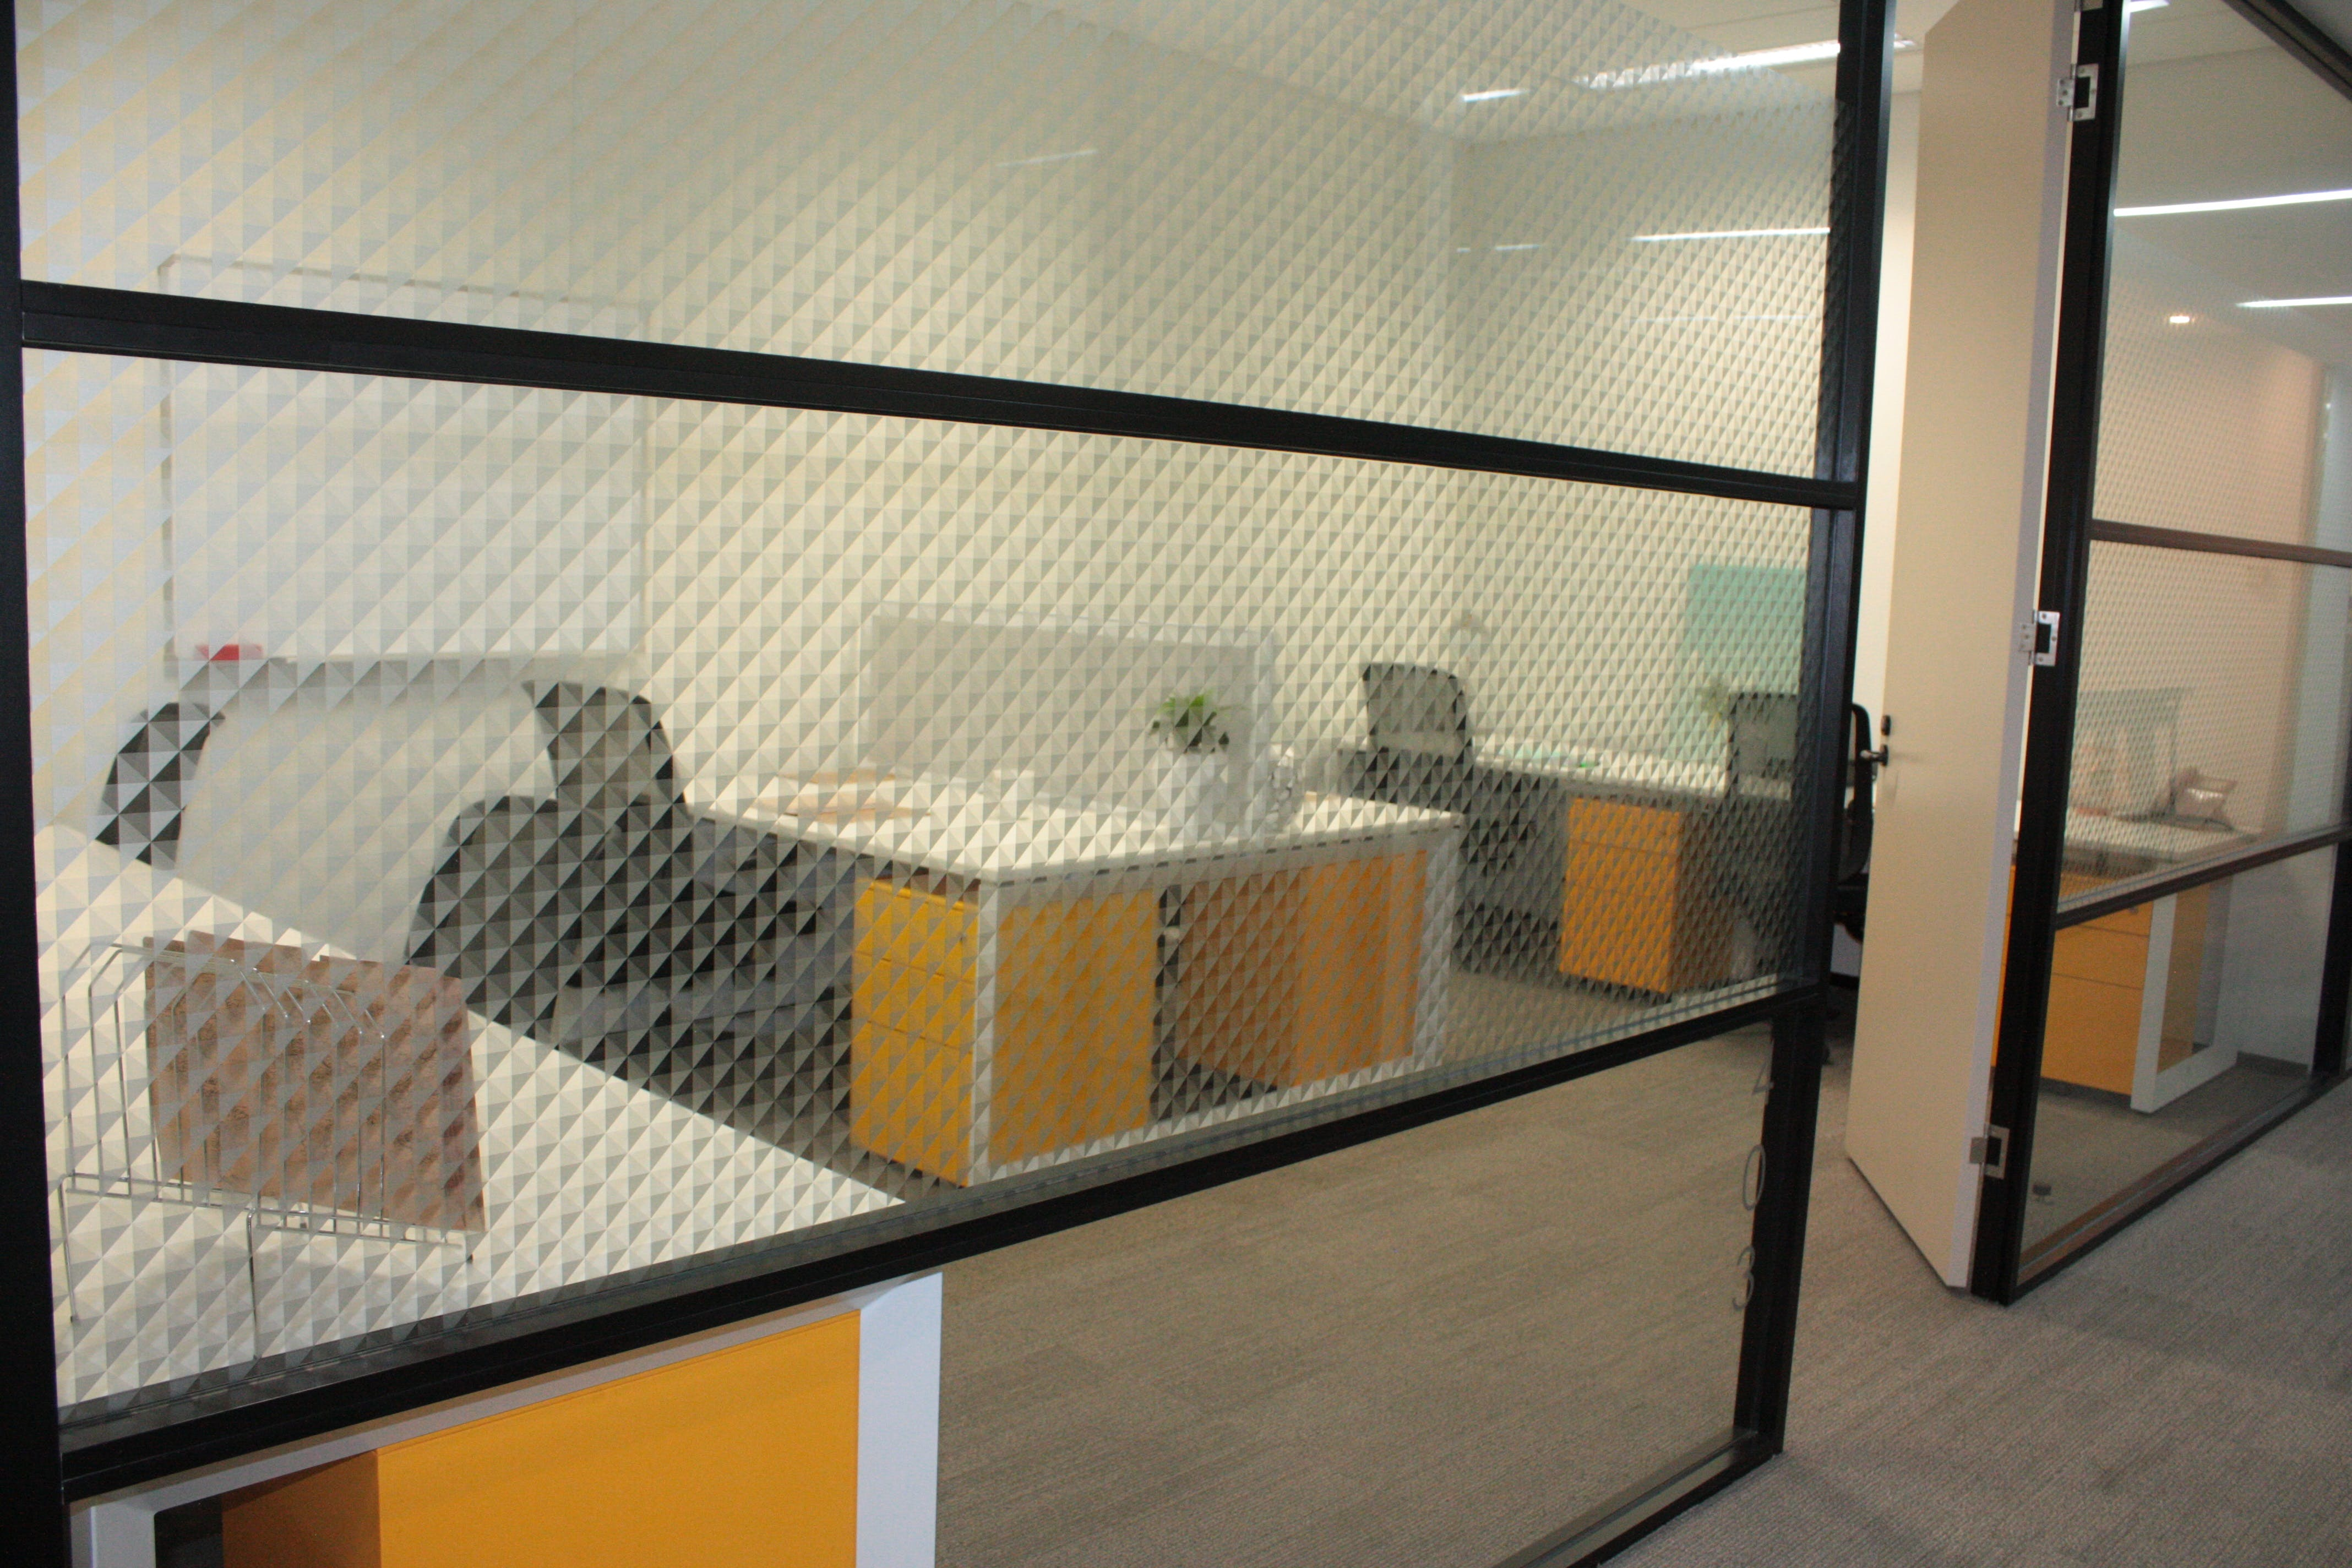 Suite 403, serviced office at Edge Offices George St, image 1